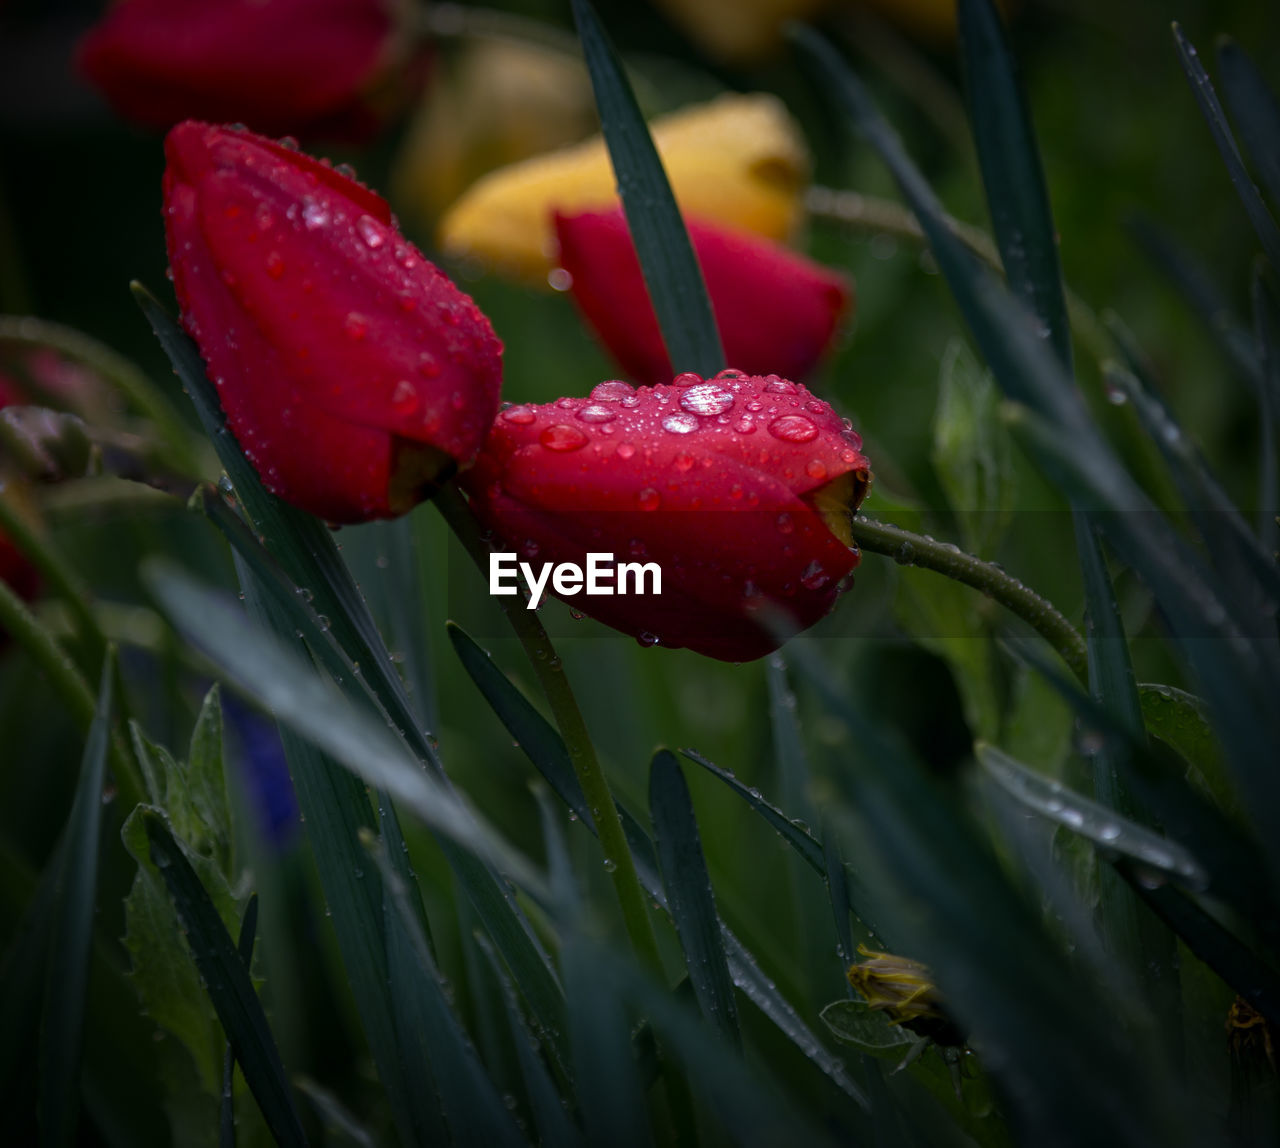 red, growth, drop, nature, wet, plant, beauty in nature, water, close-up, no people, freshness, green color, outdoors, flower, leaf, raindrop, day, fragility, flower head